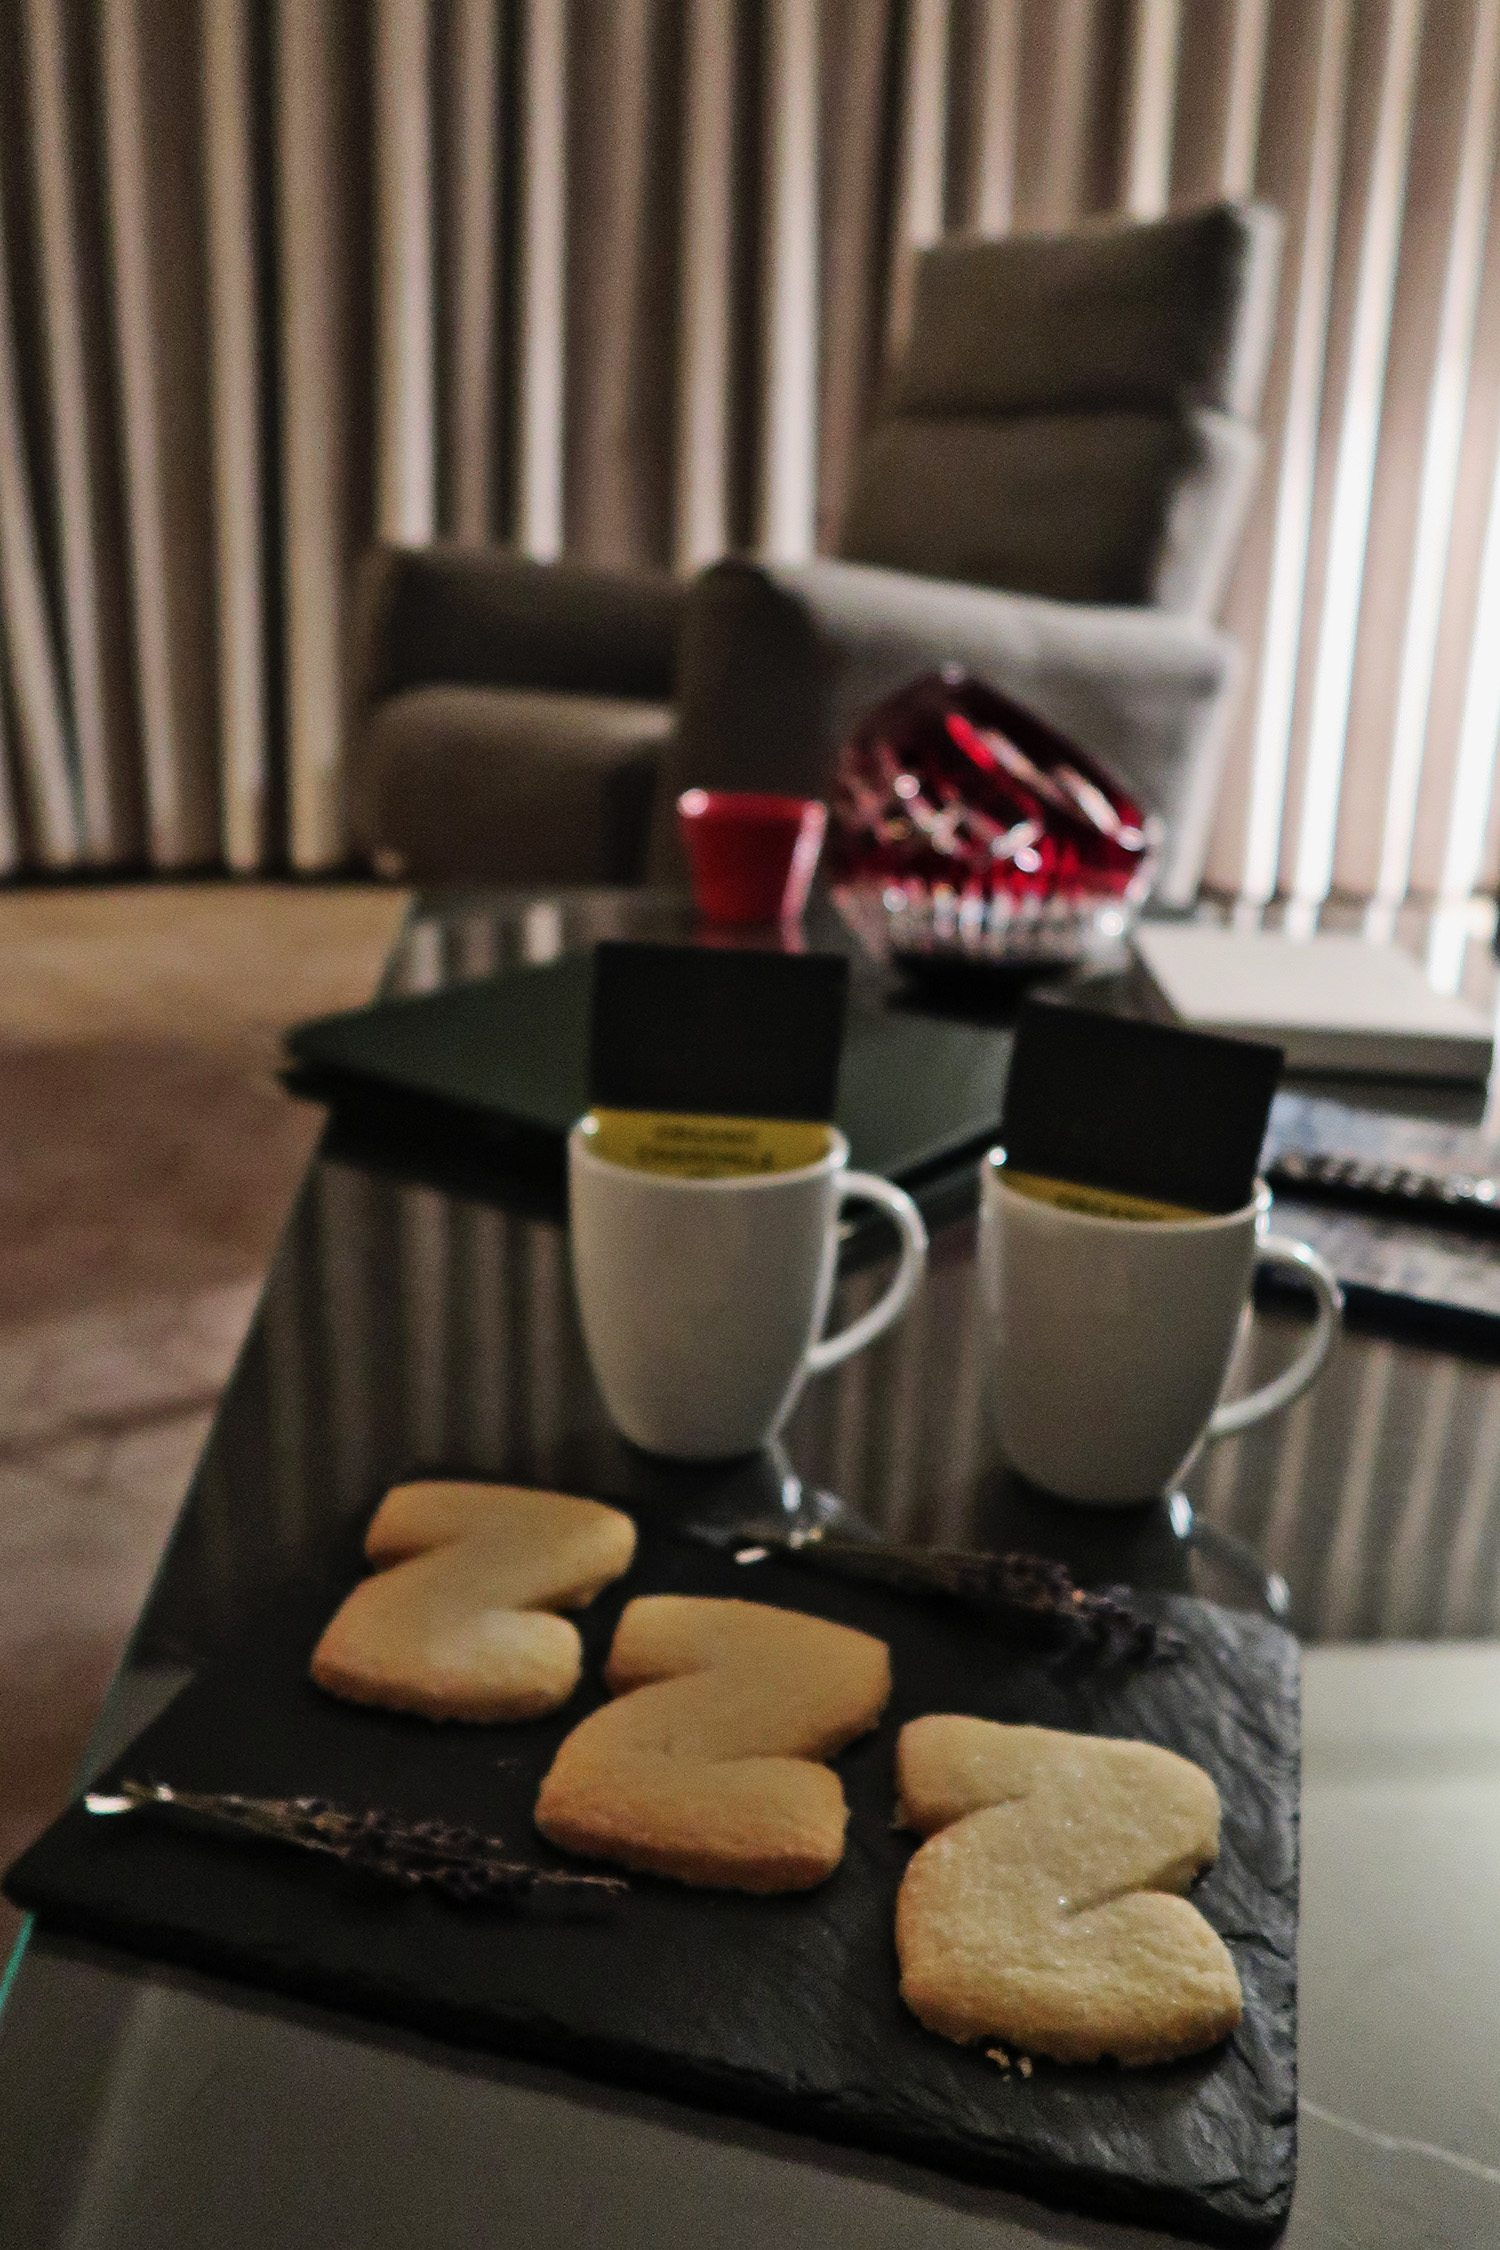 Plate of z-shaped biscuits and two mugs with tea bags in them placed on the coffee table in the suite